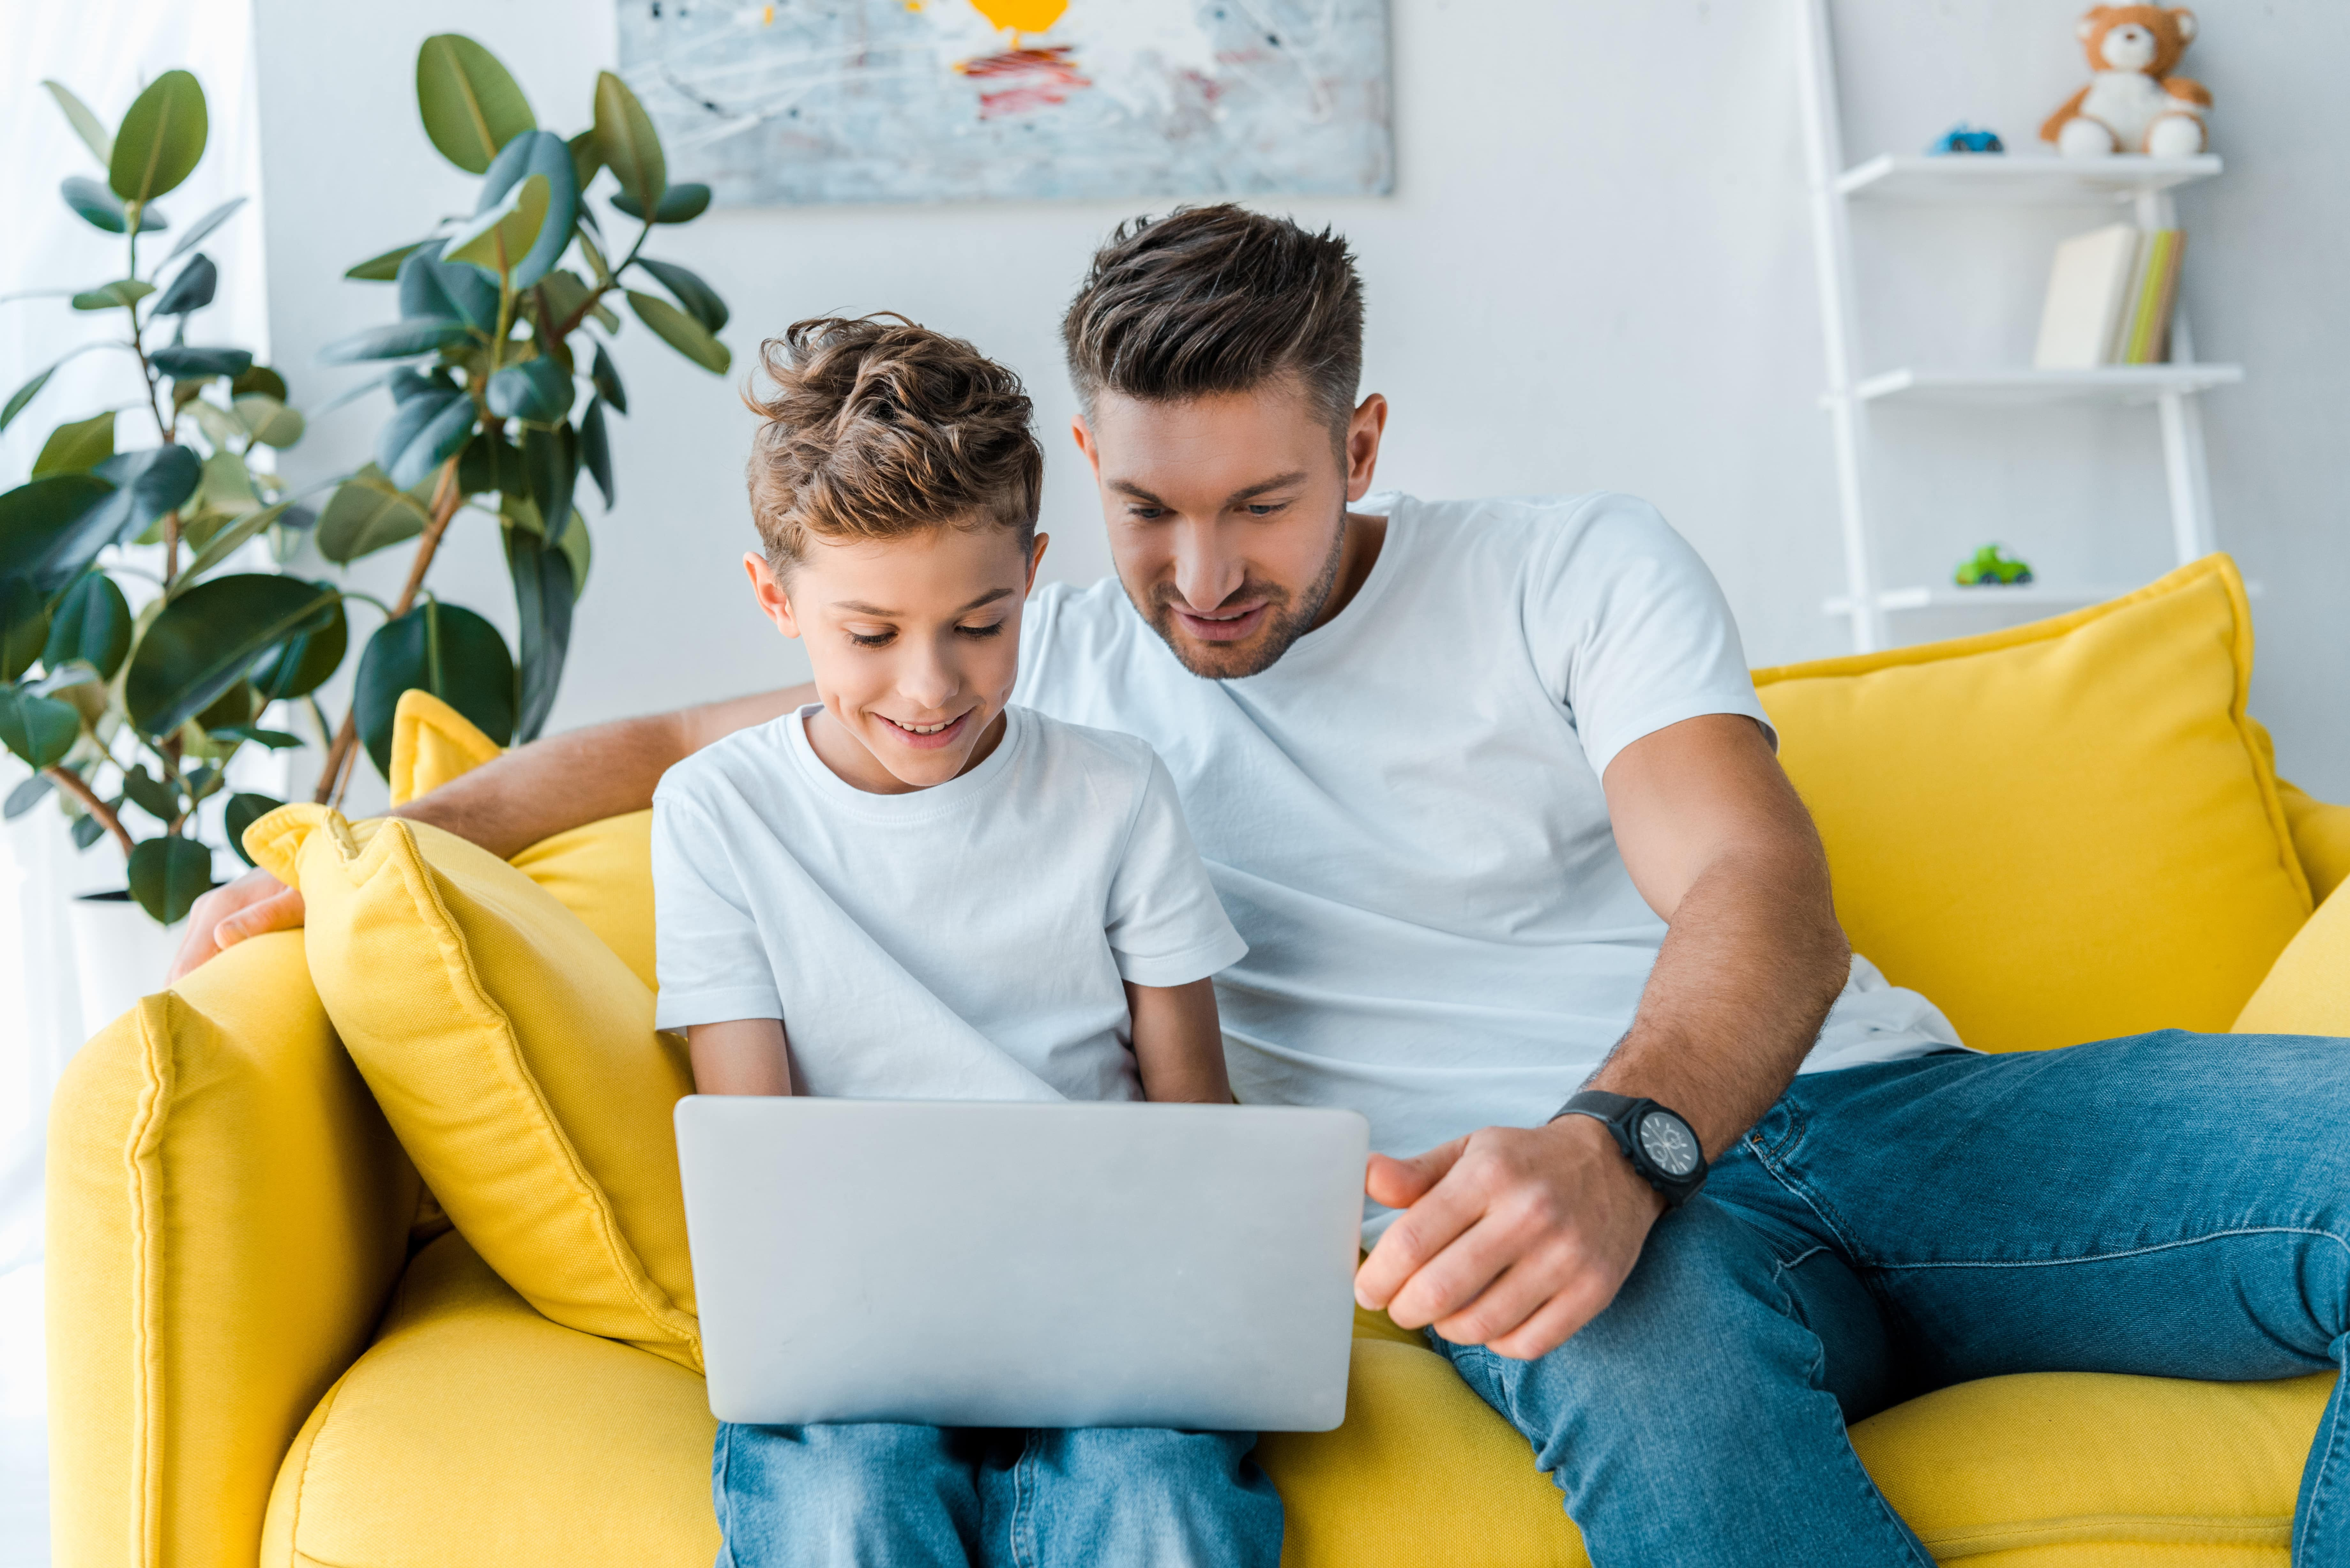 dad and son learning math online